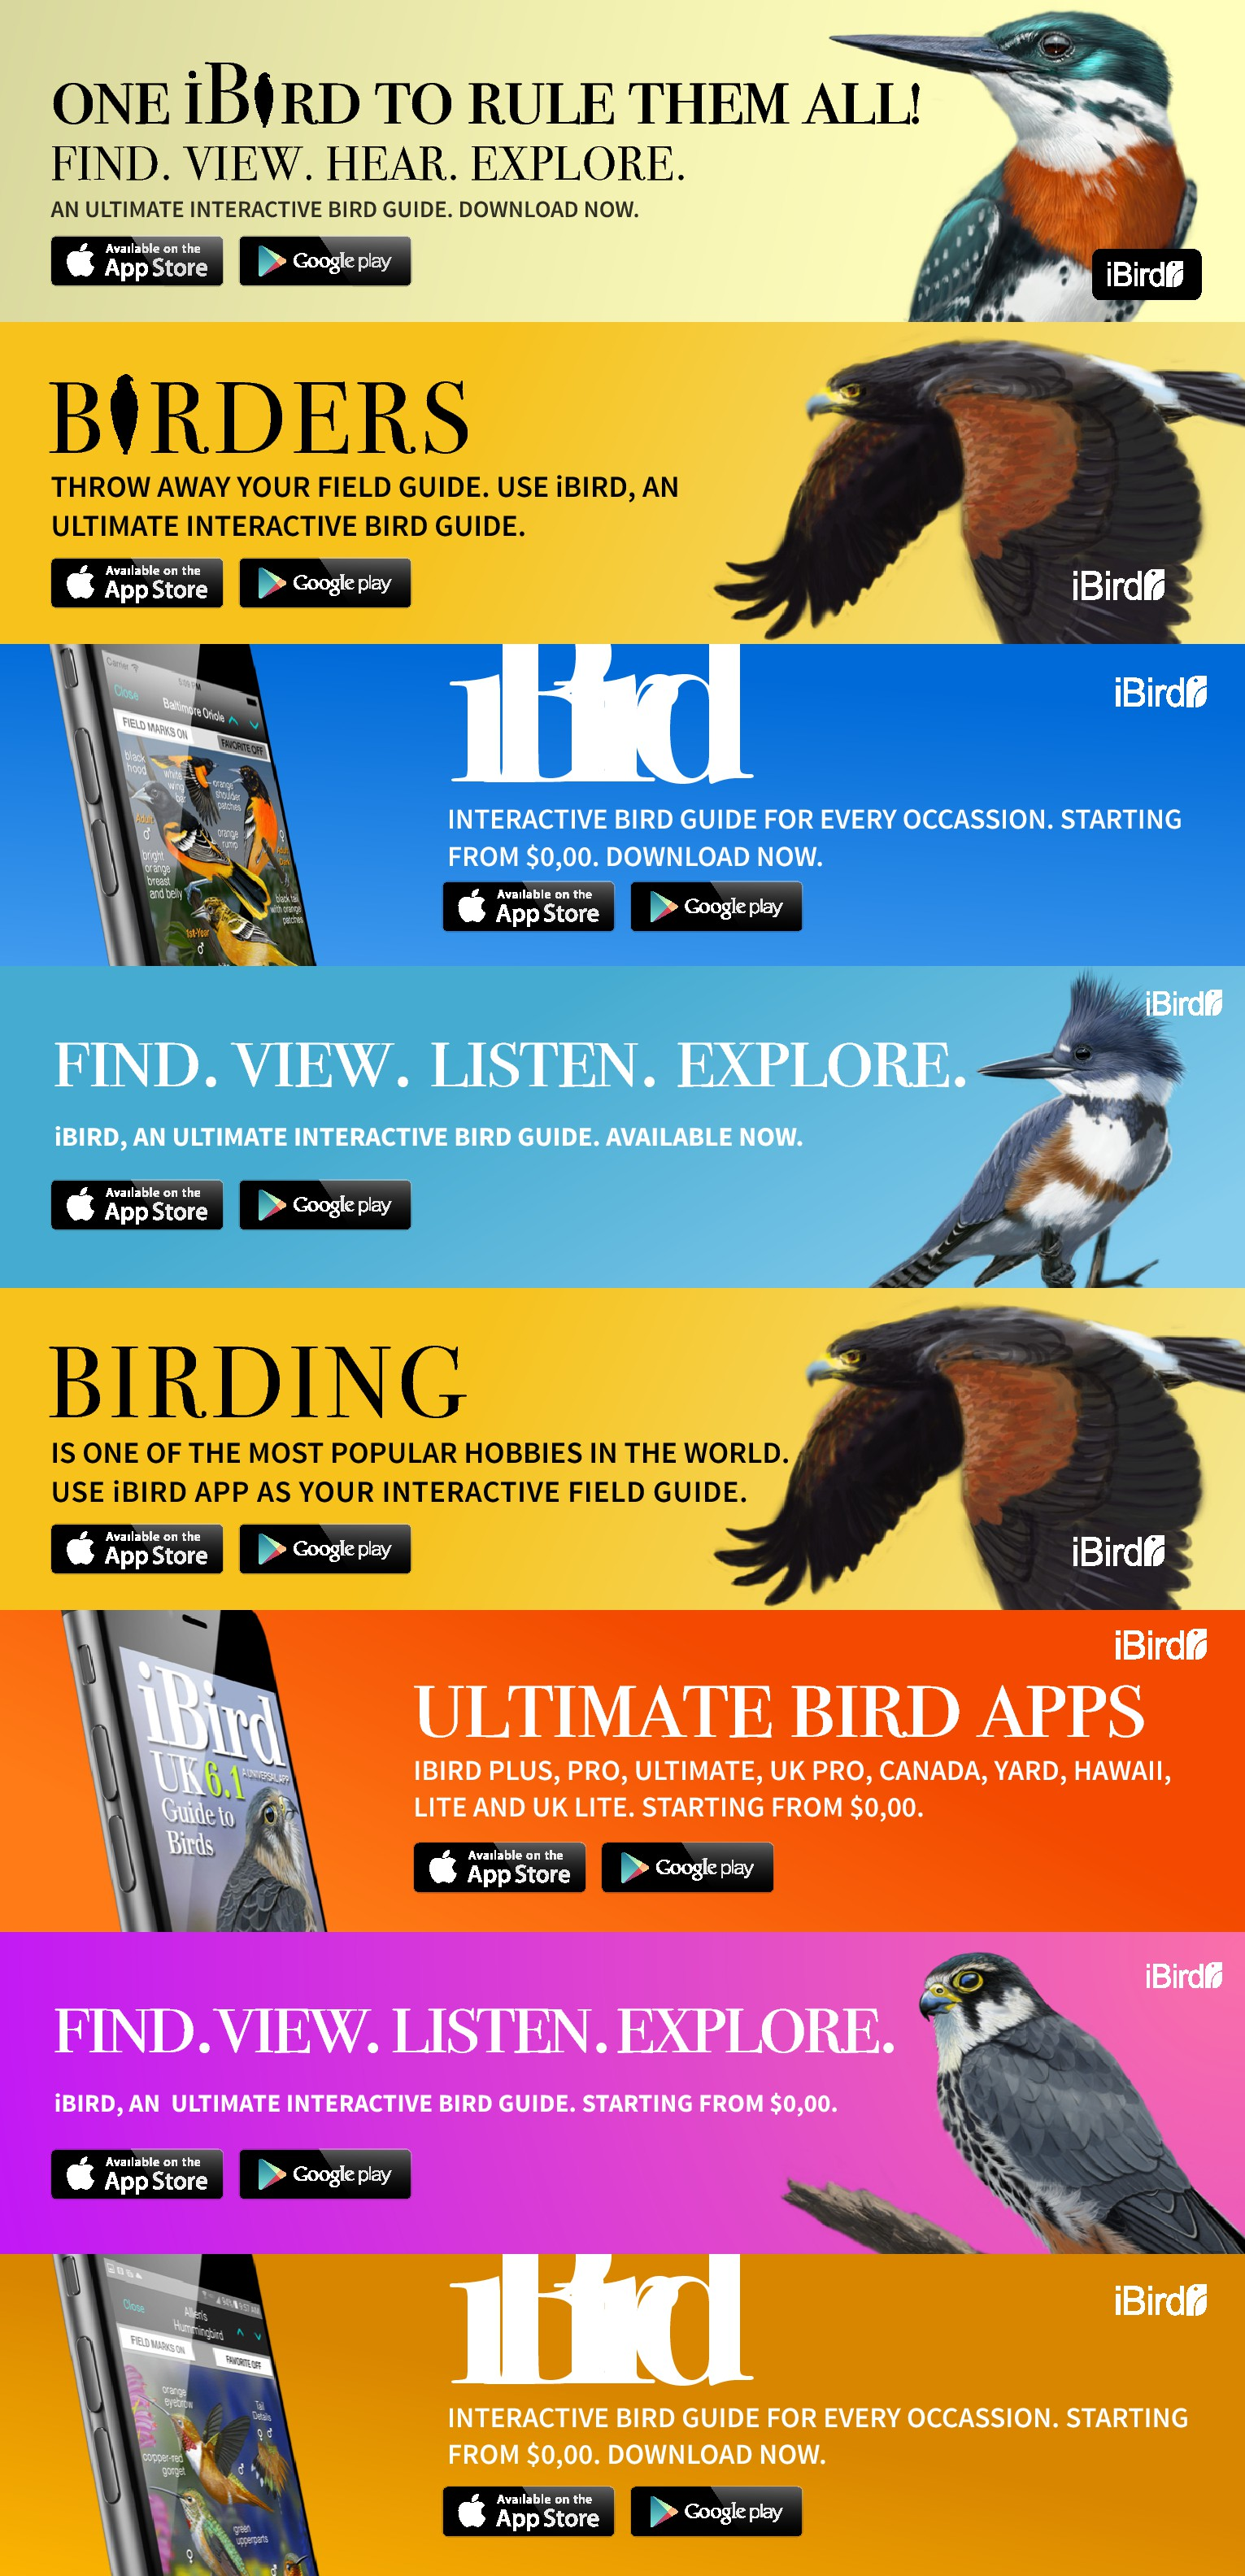 Create 3 winning banner ads for the iBird Guide to Birds app